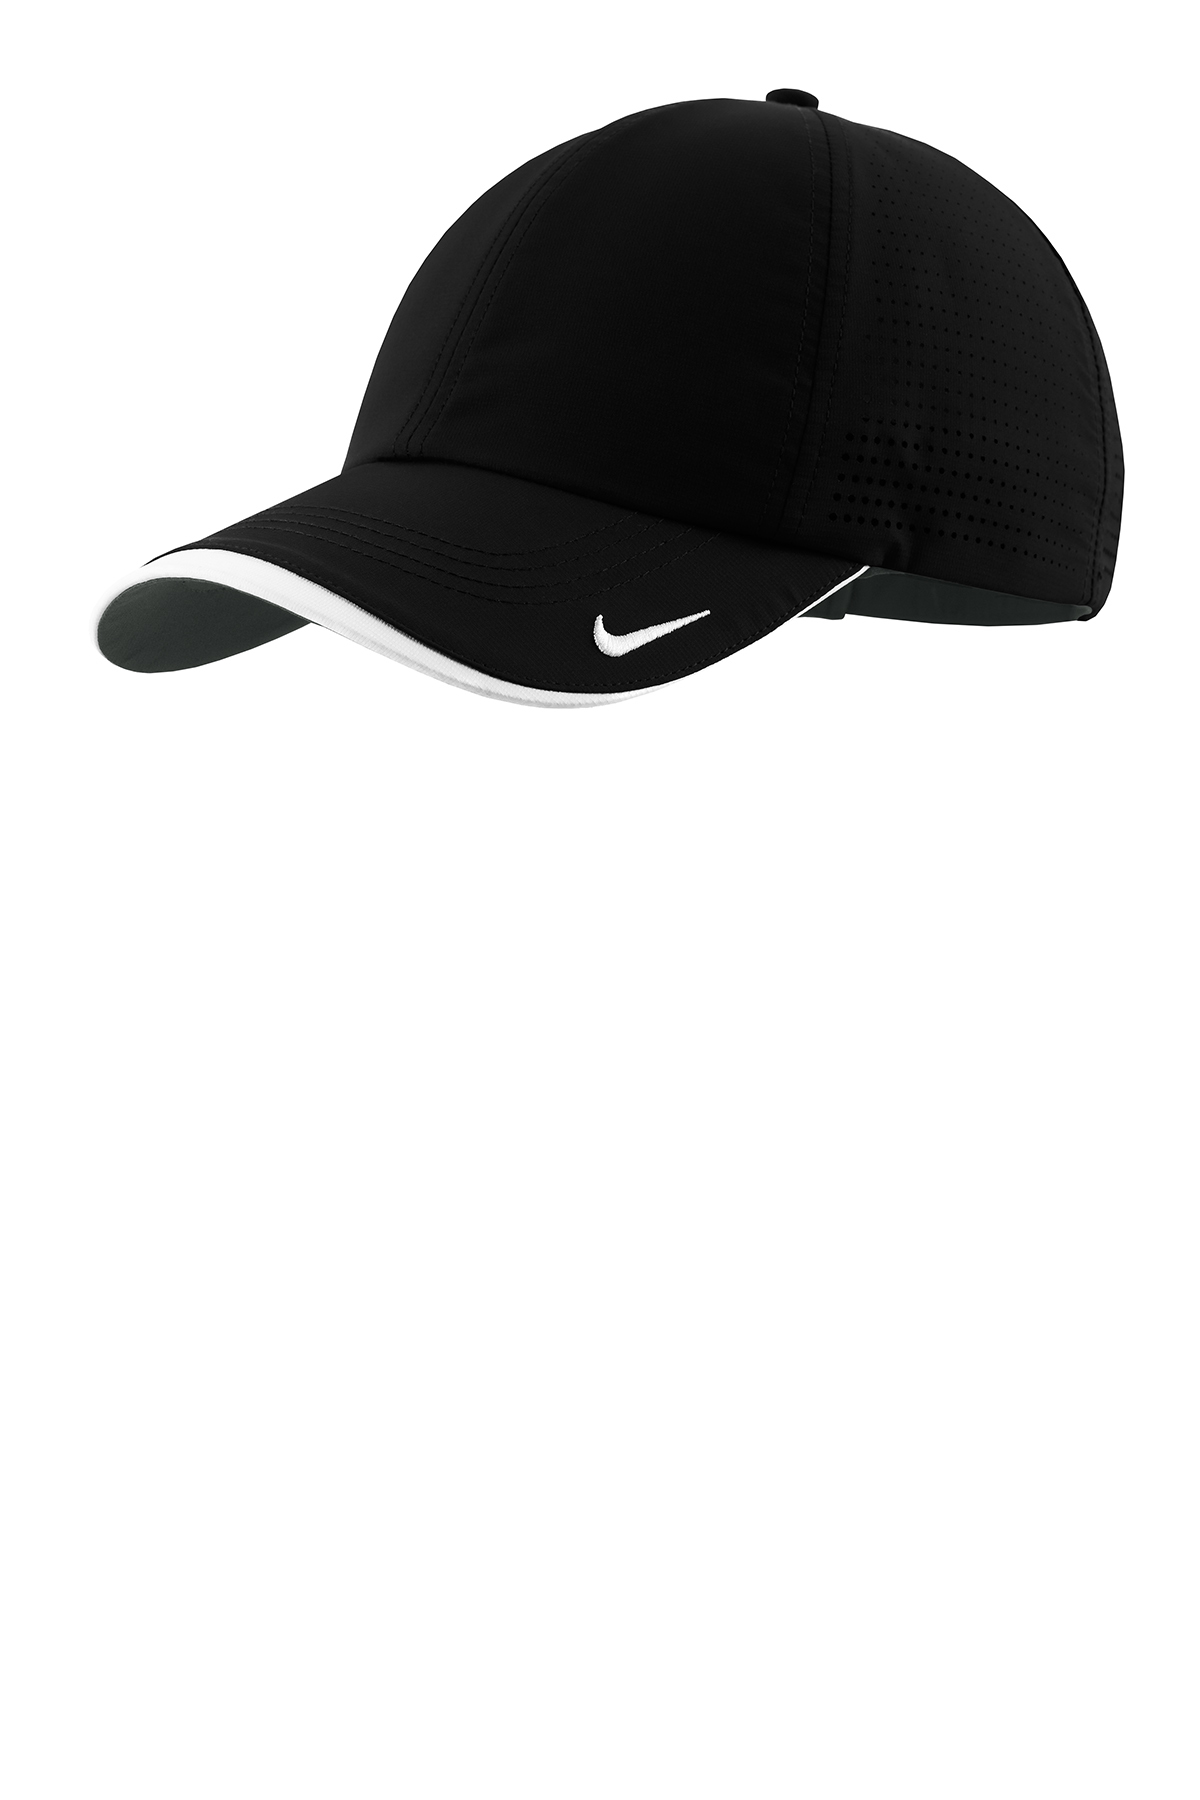 8d685287757 Nike Dri-FIT Swoosh Perforated Cap